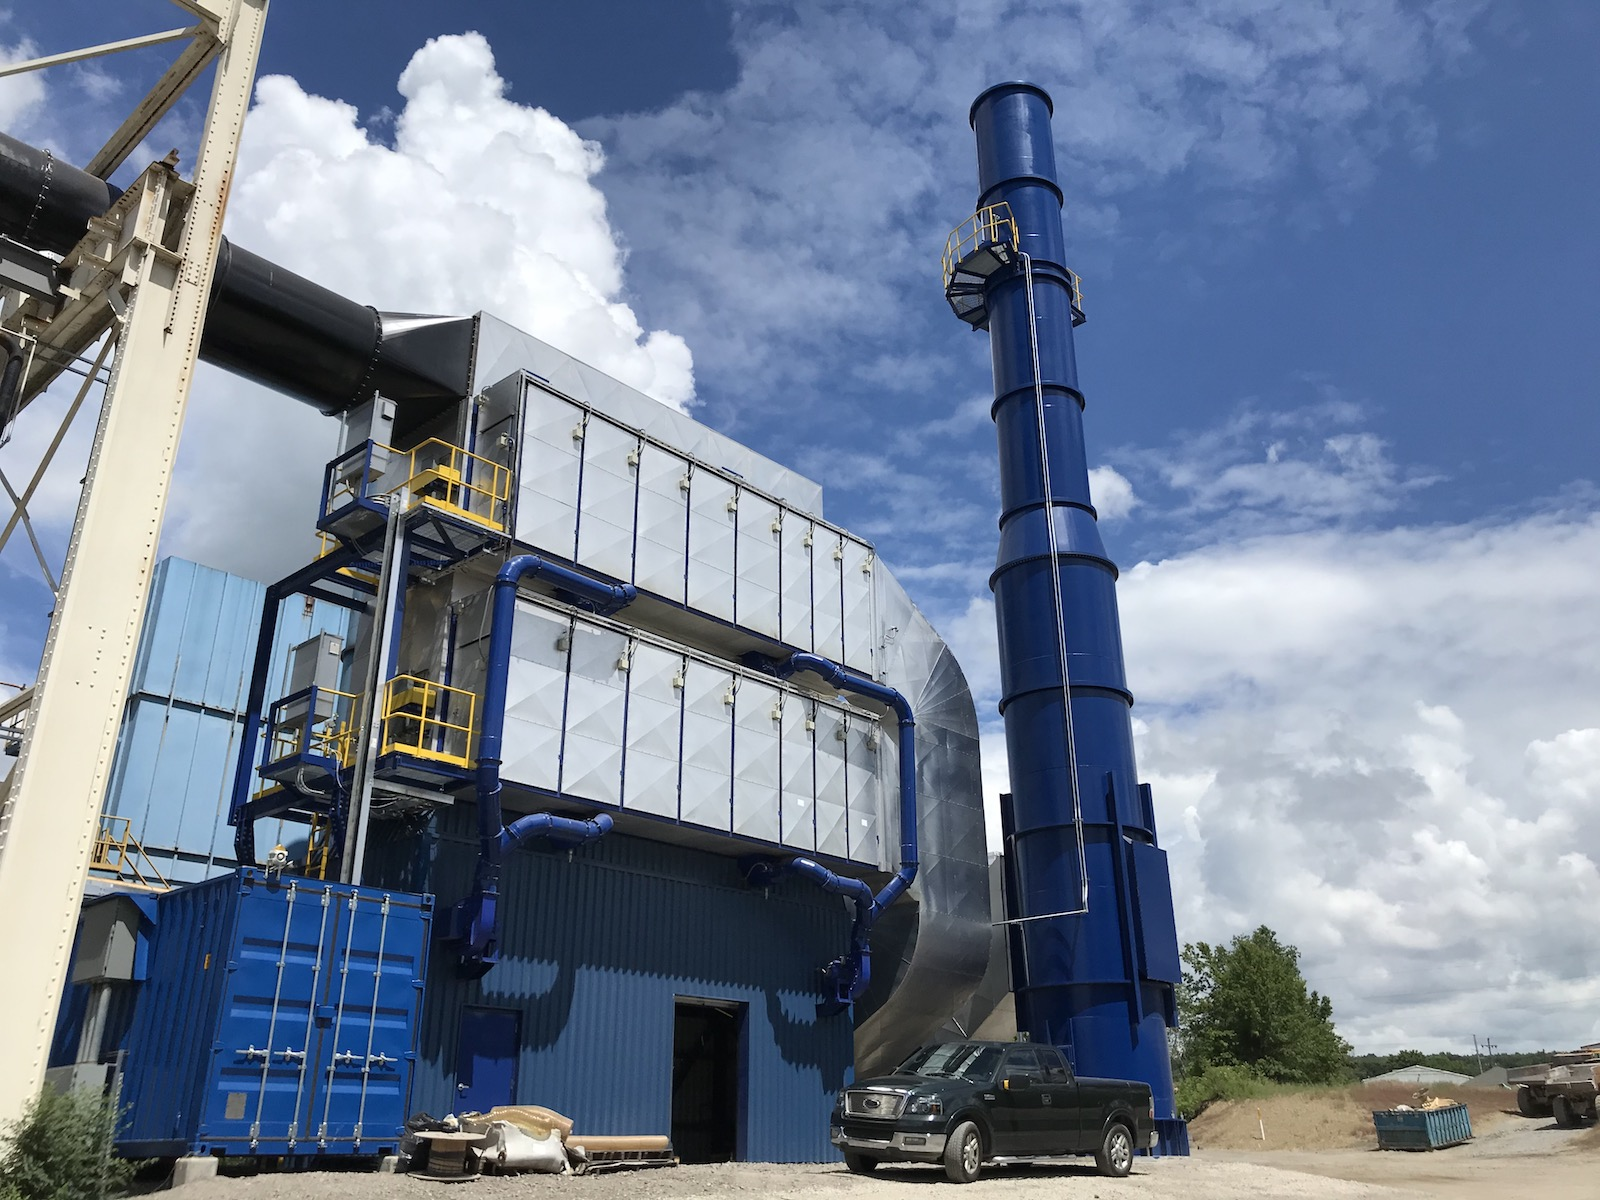 Figure 7. The air cleaning system and baghouse ensure a high level of air filtration from the aluminum recycling operation.